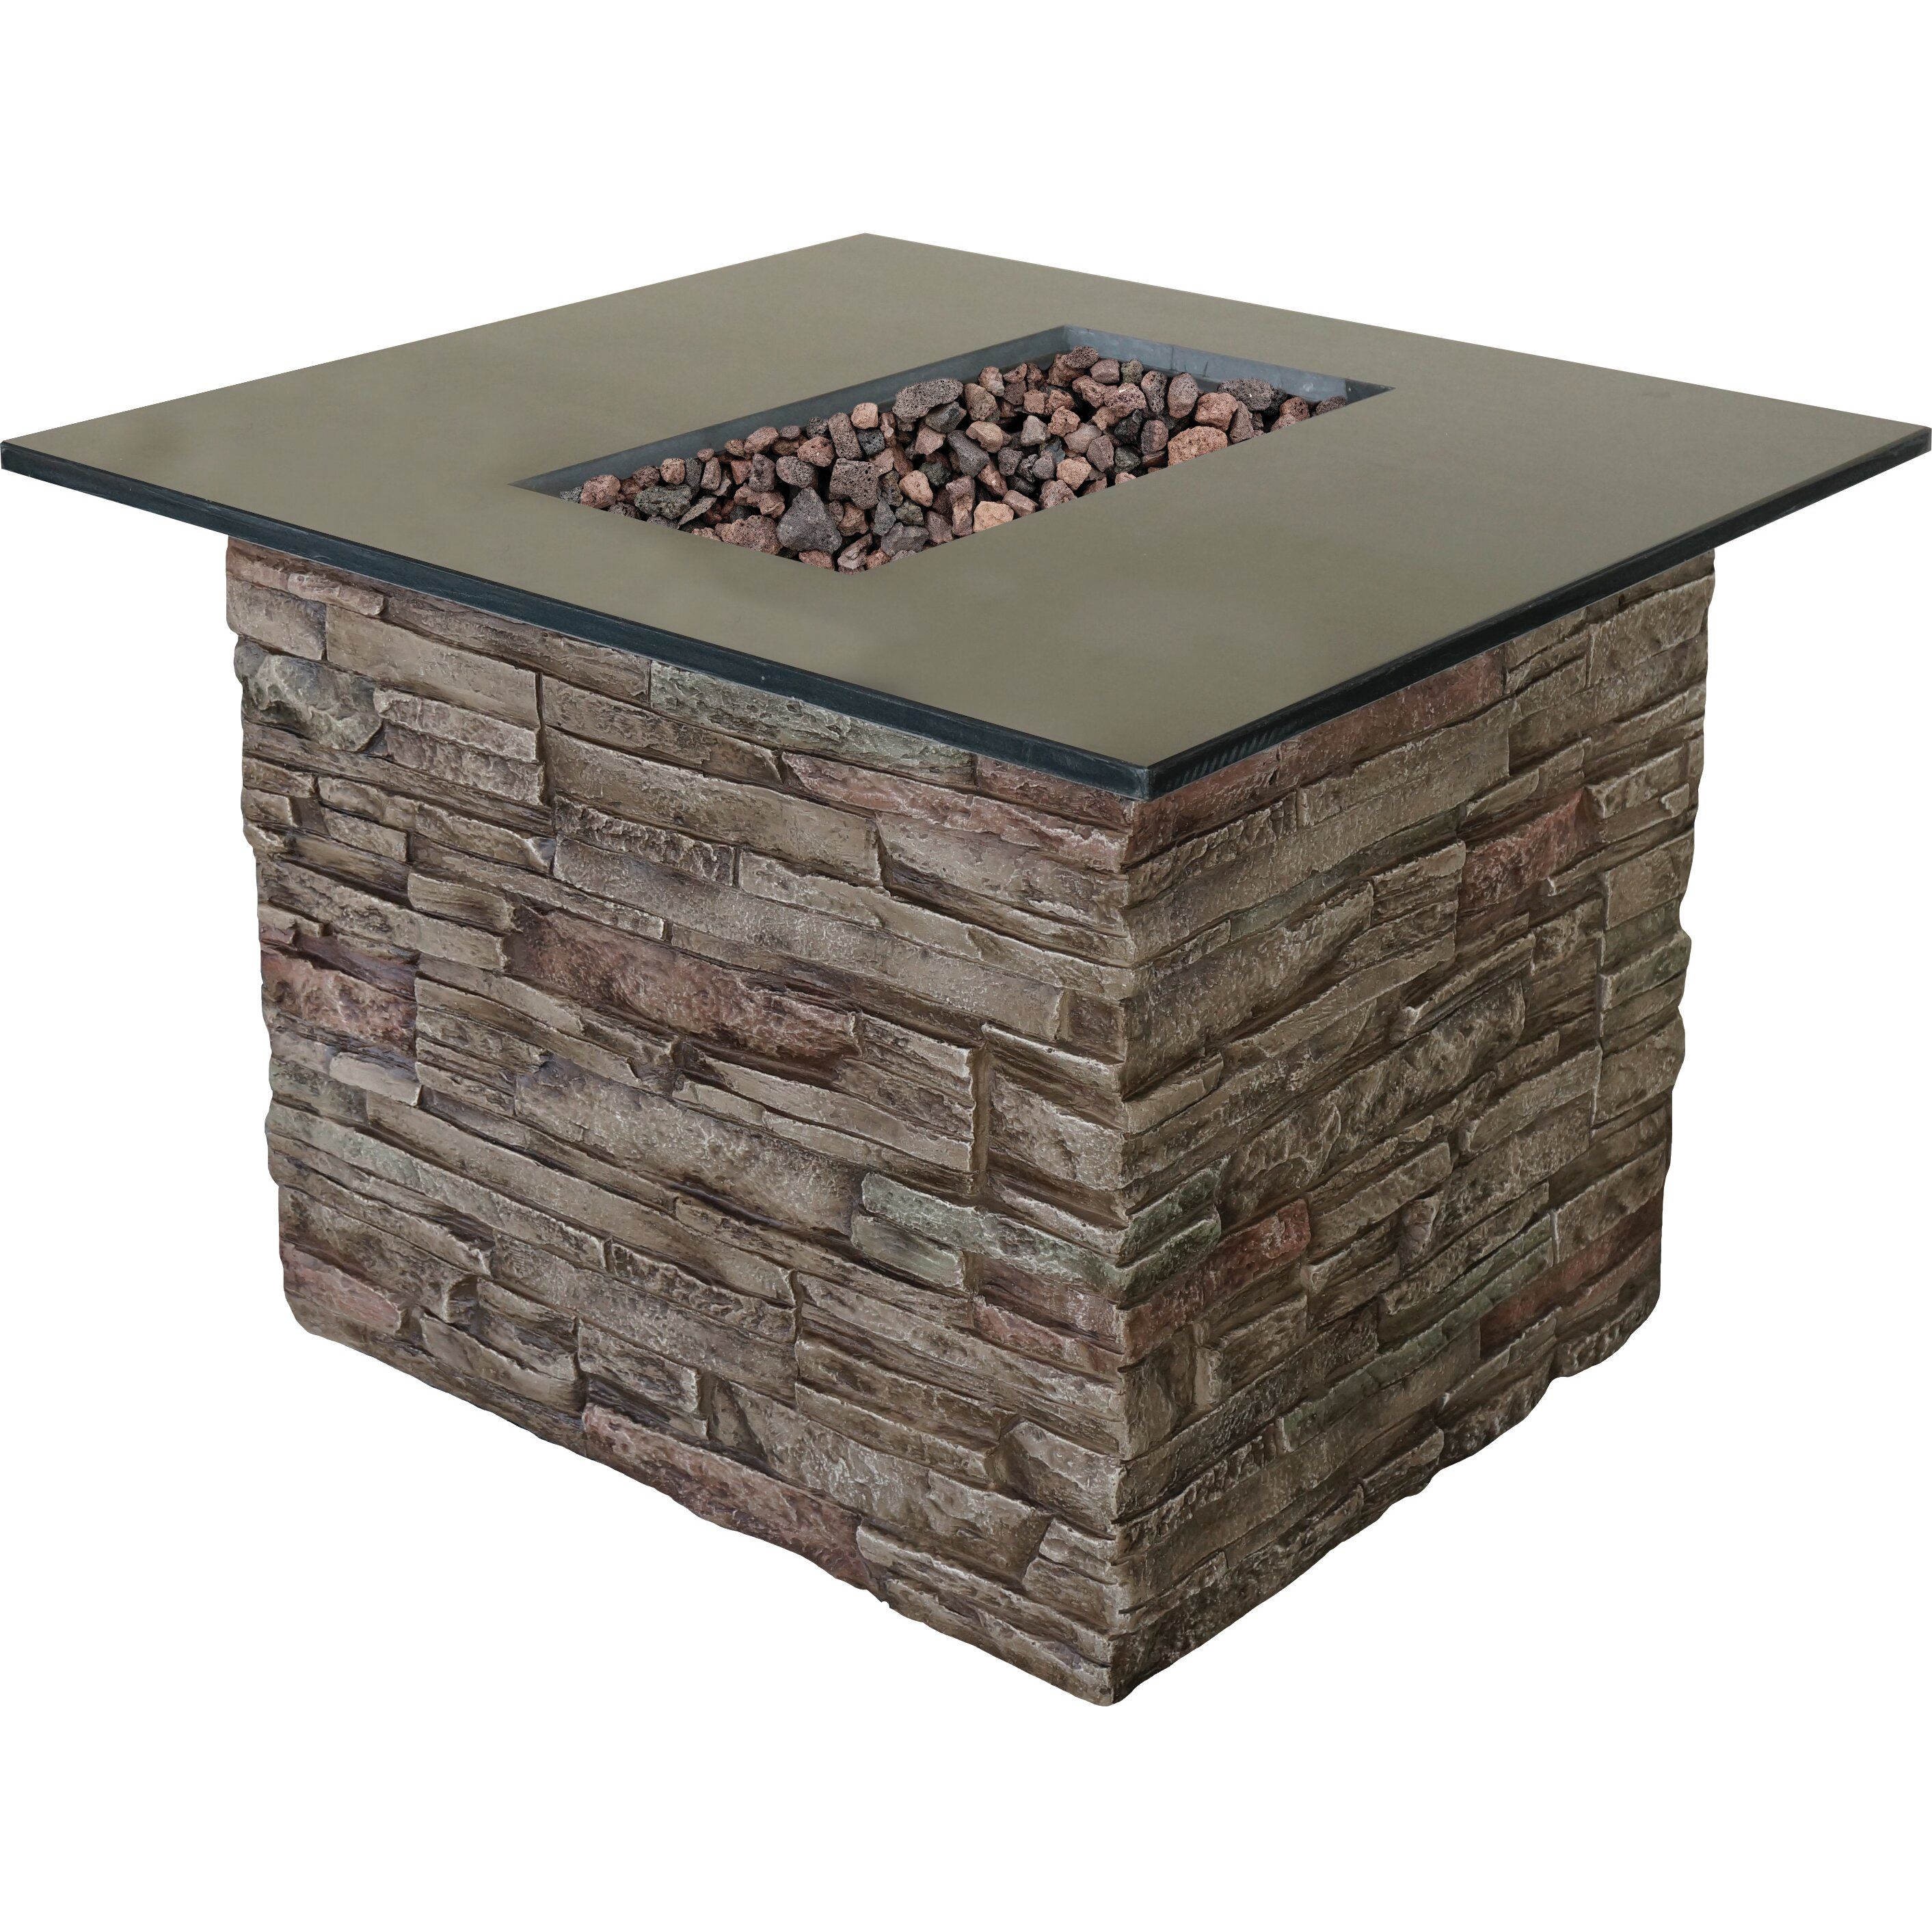 Bond Monterey Gas Outdoor Table Top Fireplace & Reviews